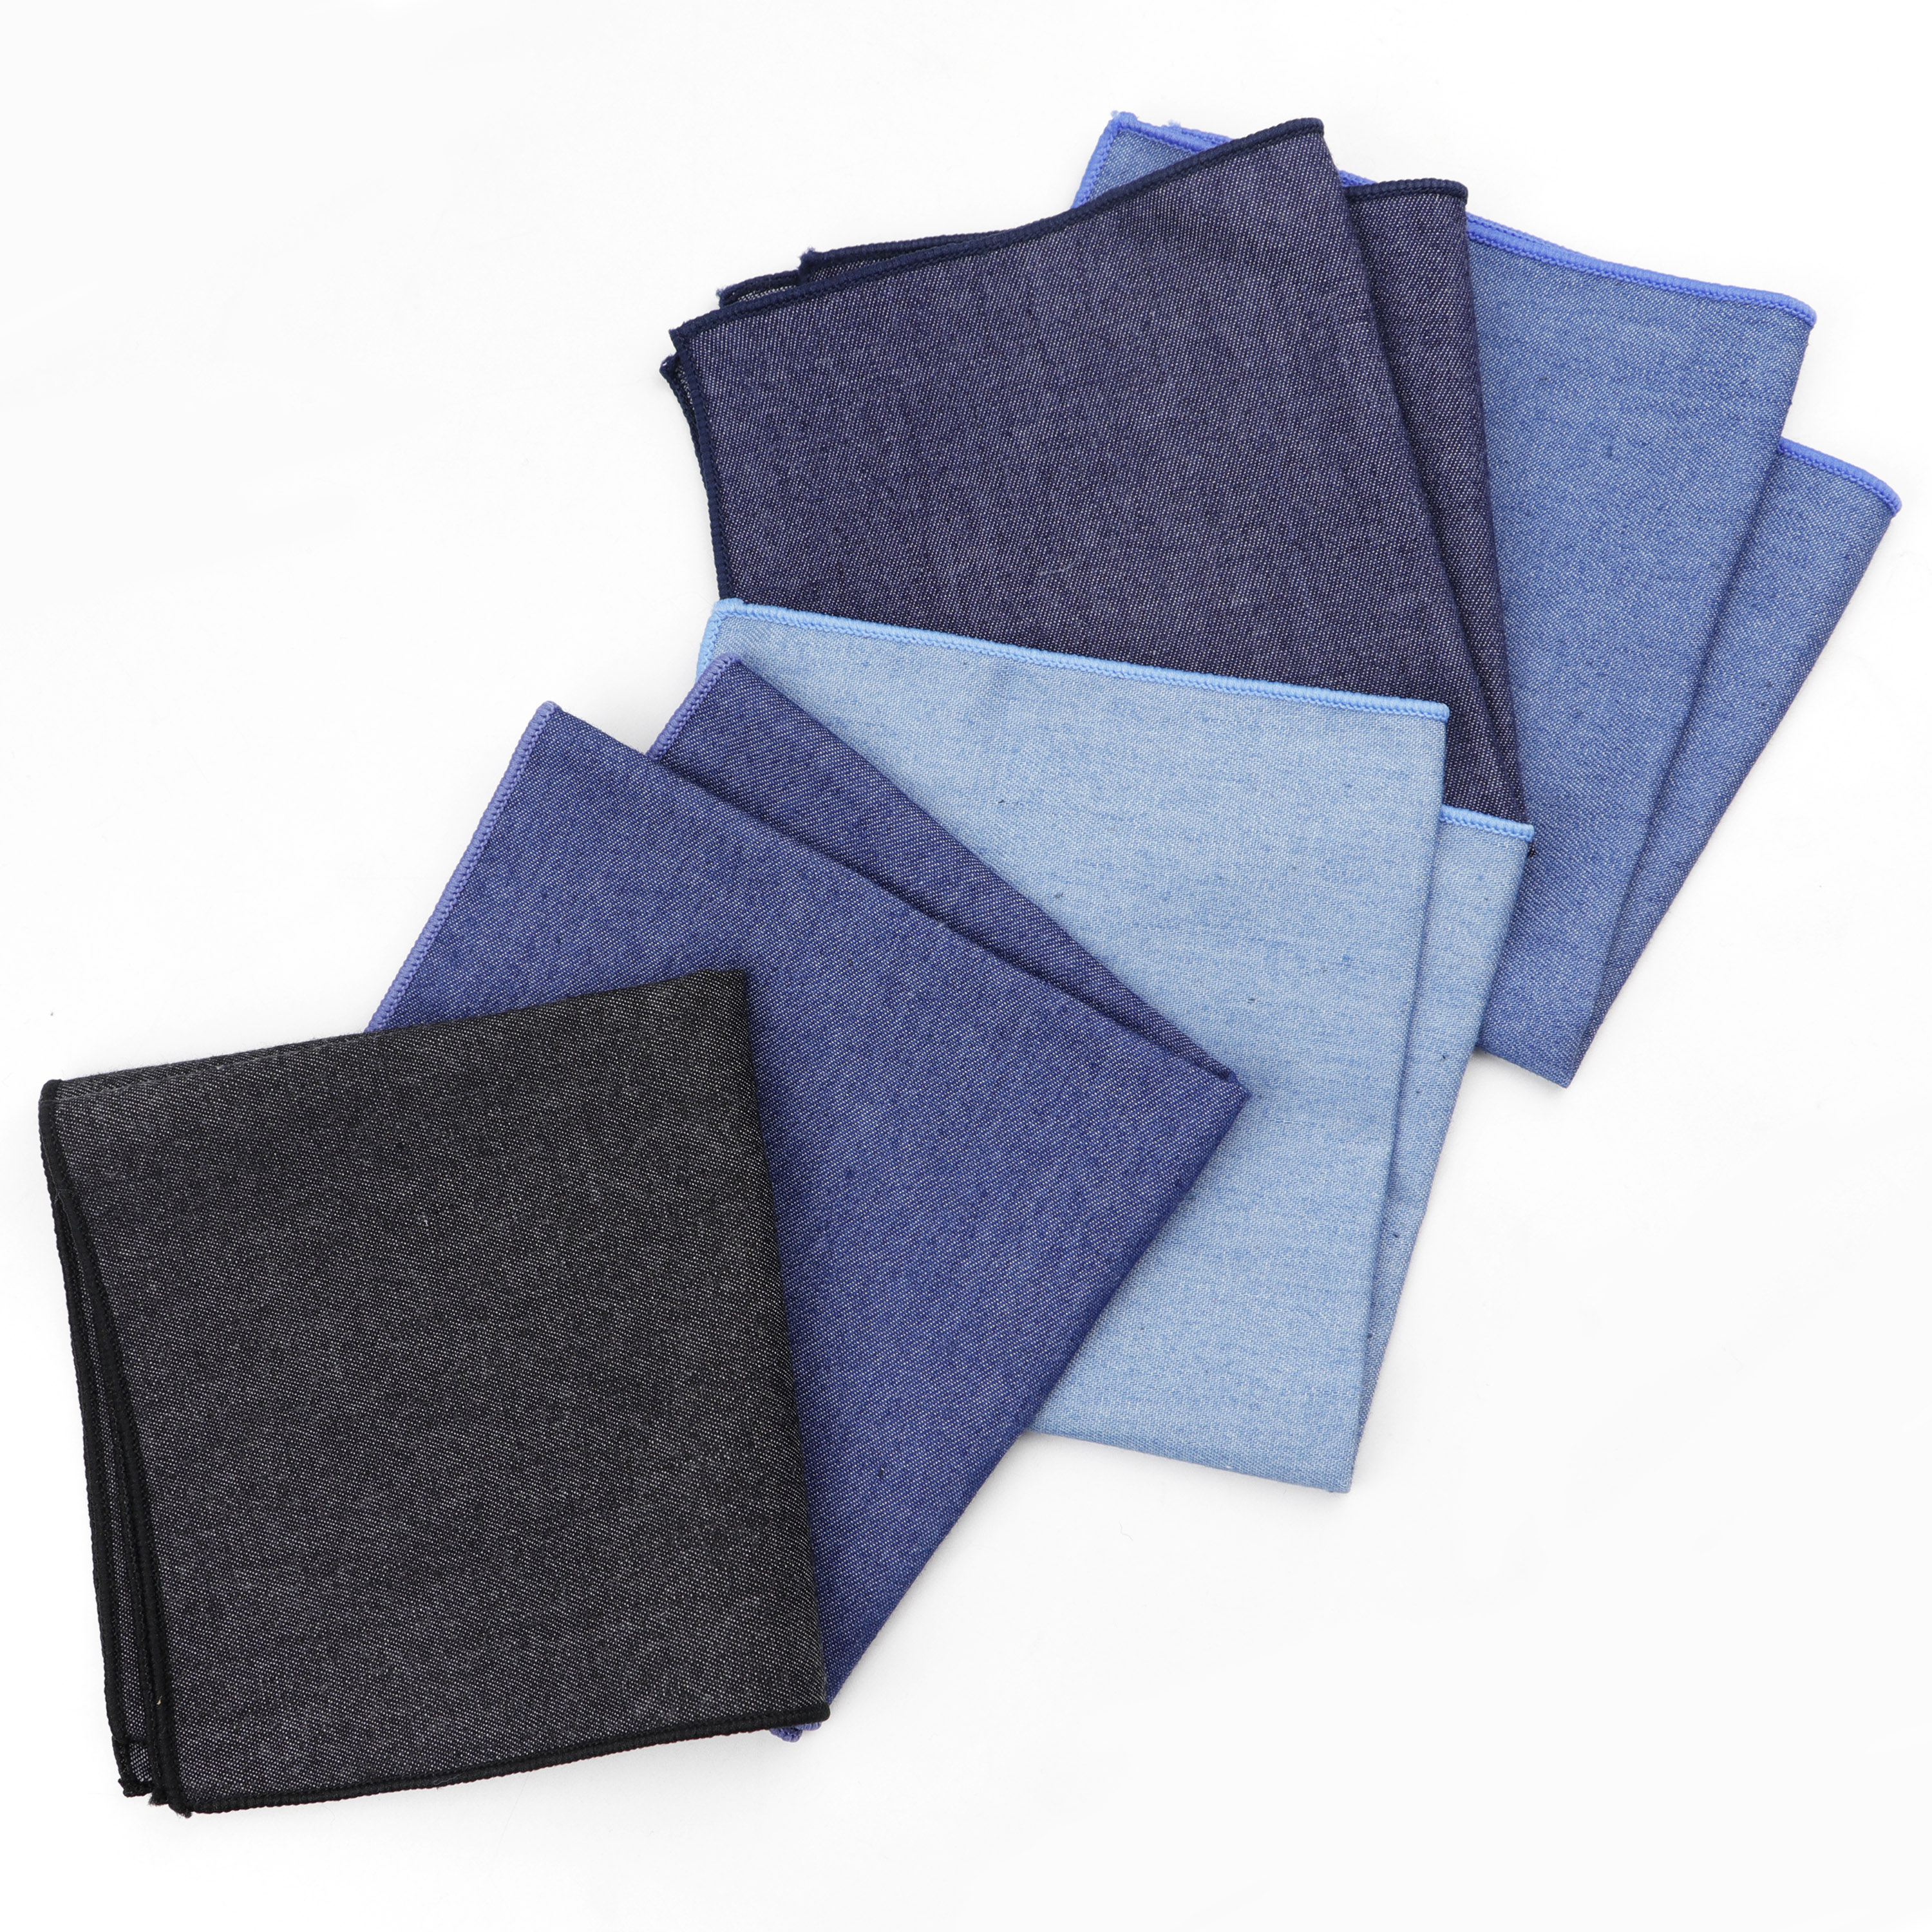 Solid Denim Cotton Handkerchiefs Woven White Black Red Blue Pocket Square Mens Casual Square Pockets Handkerchief Towels